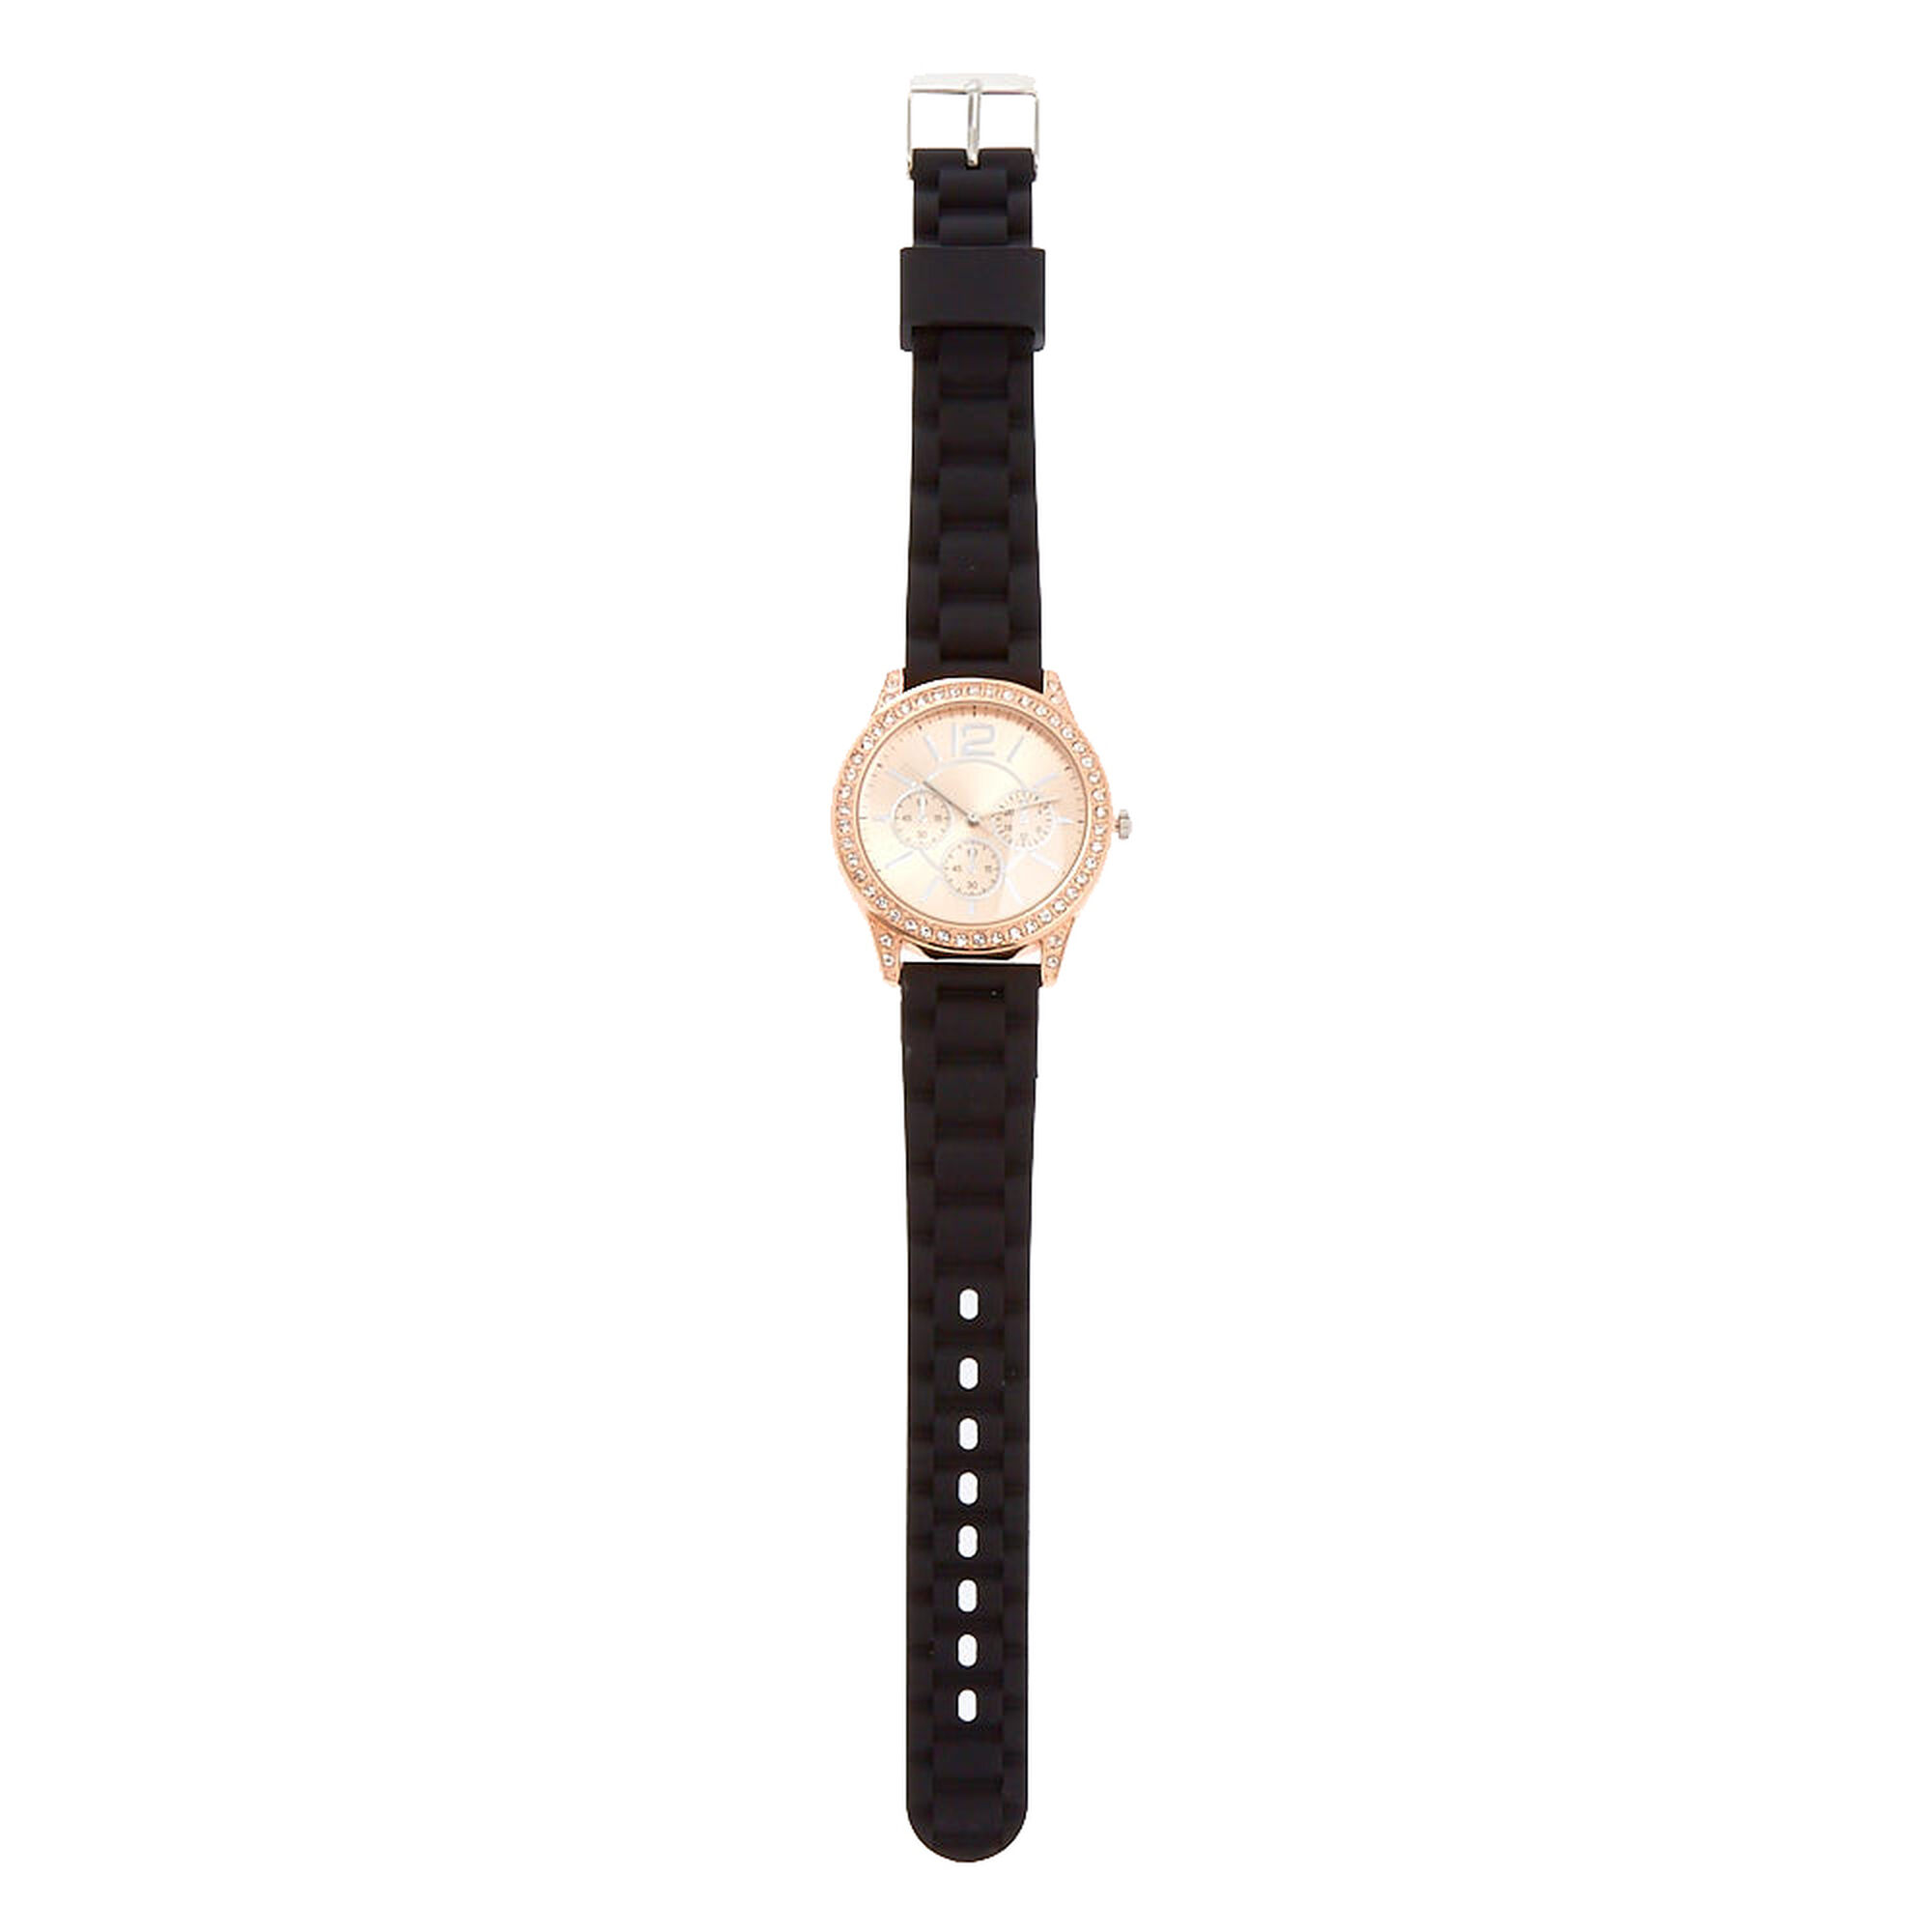 blinds watches gunmetal gold the unisex mens silver for watch surfstitch adults accessories blind arrow nixon